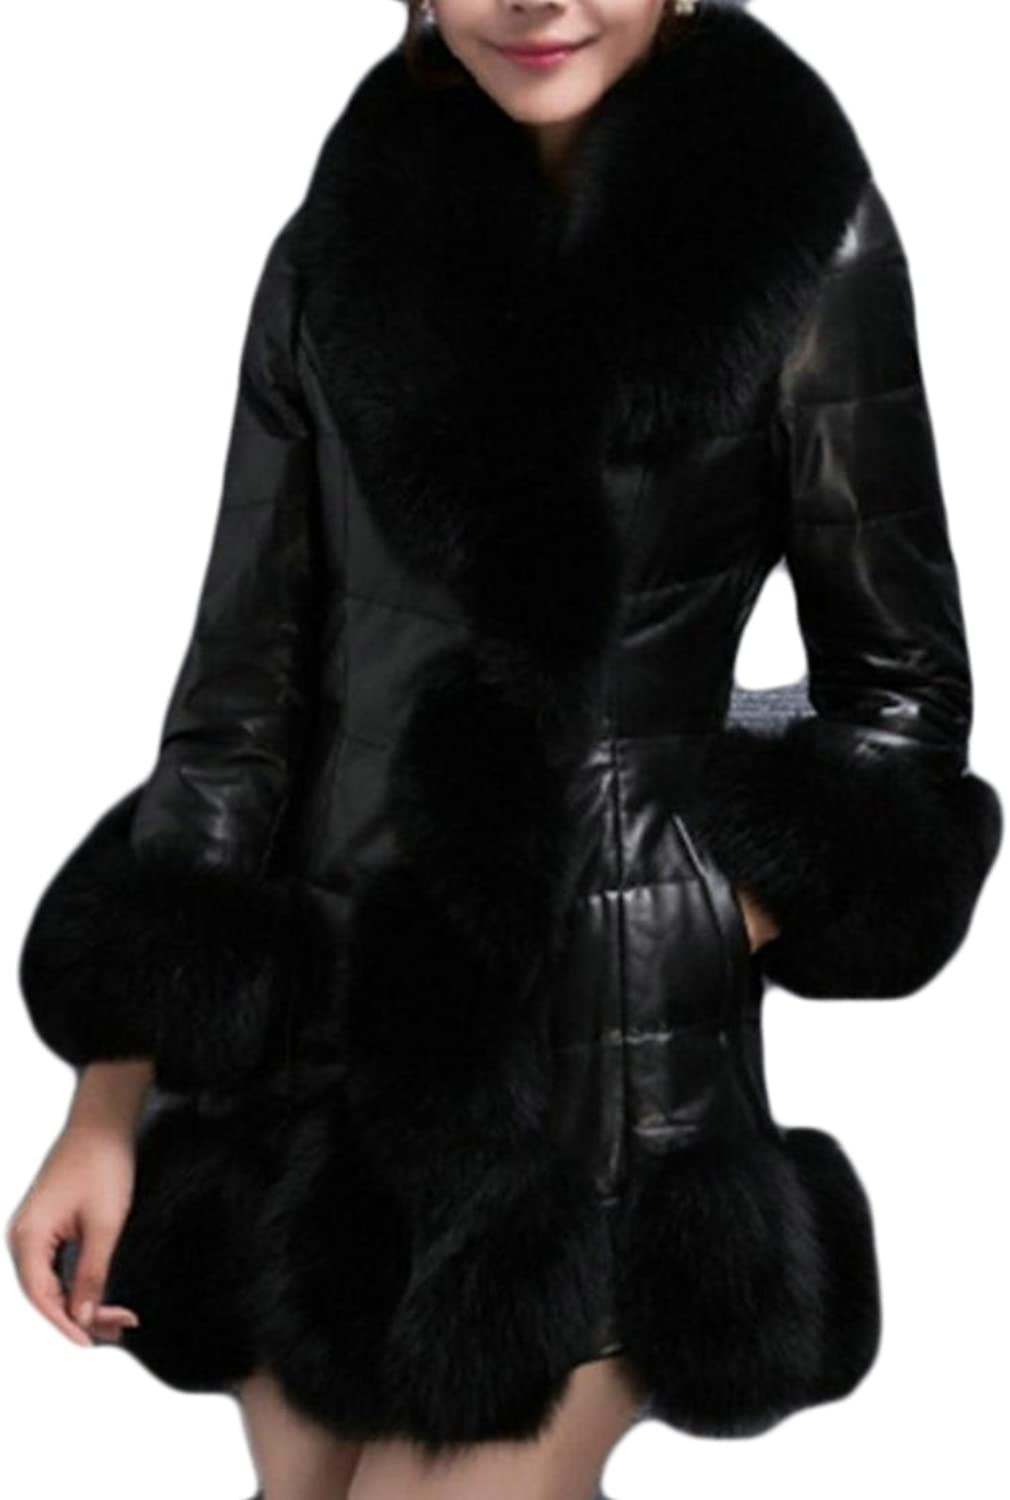 HTOOHTOOH Women Faux Fur Collar Pu Leather Thick Down Jacket Coat